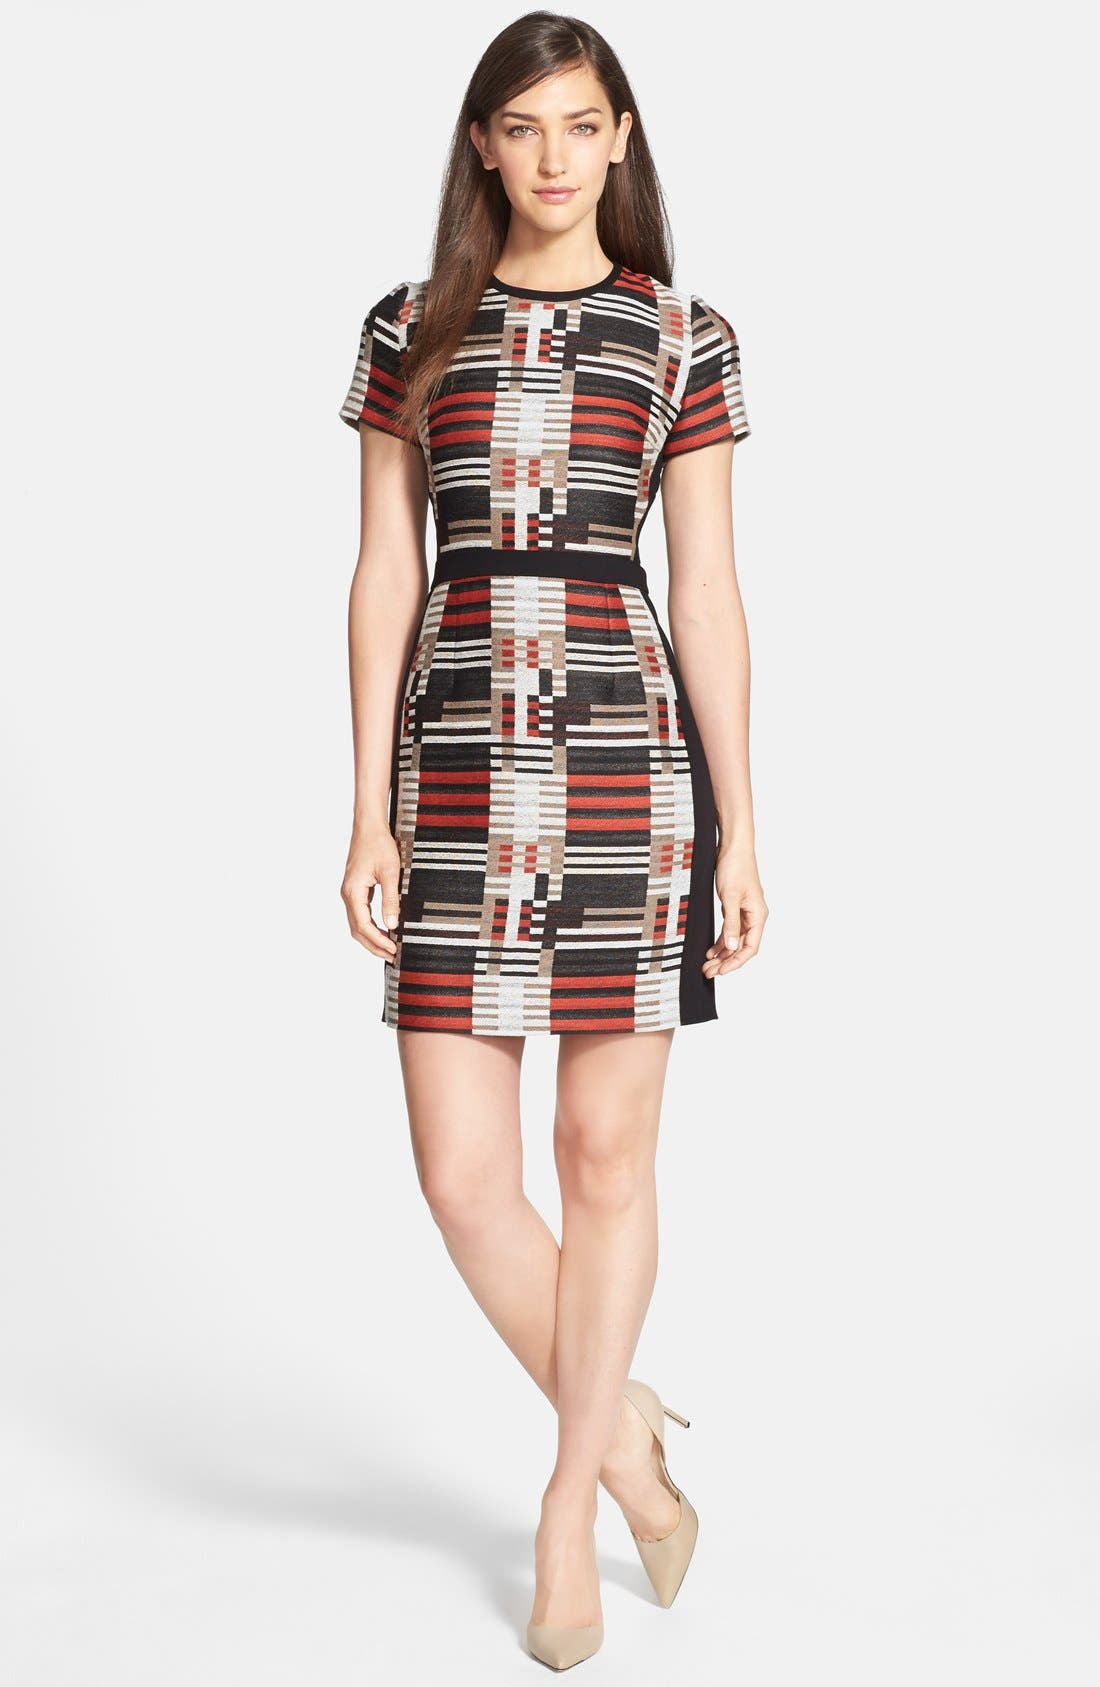 Alternate Image 1 Selected - BOSS 'Hesandra1' Tweed Pattern Sheath Dress